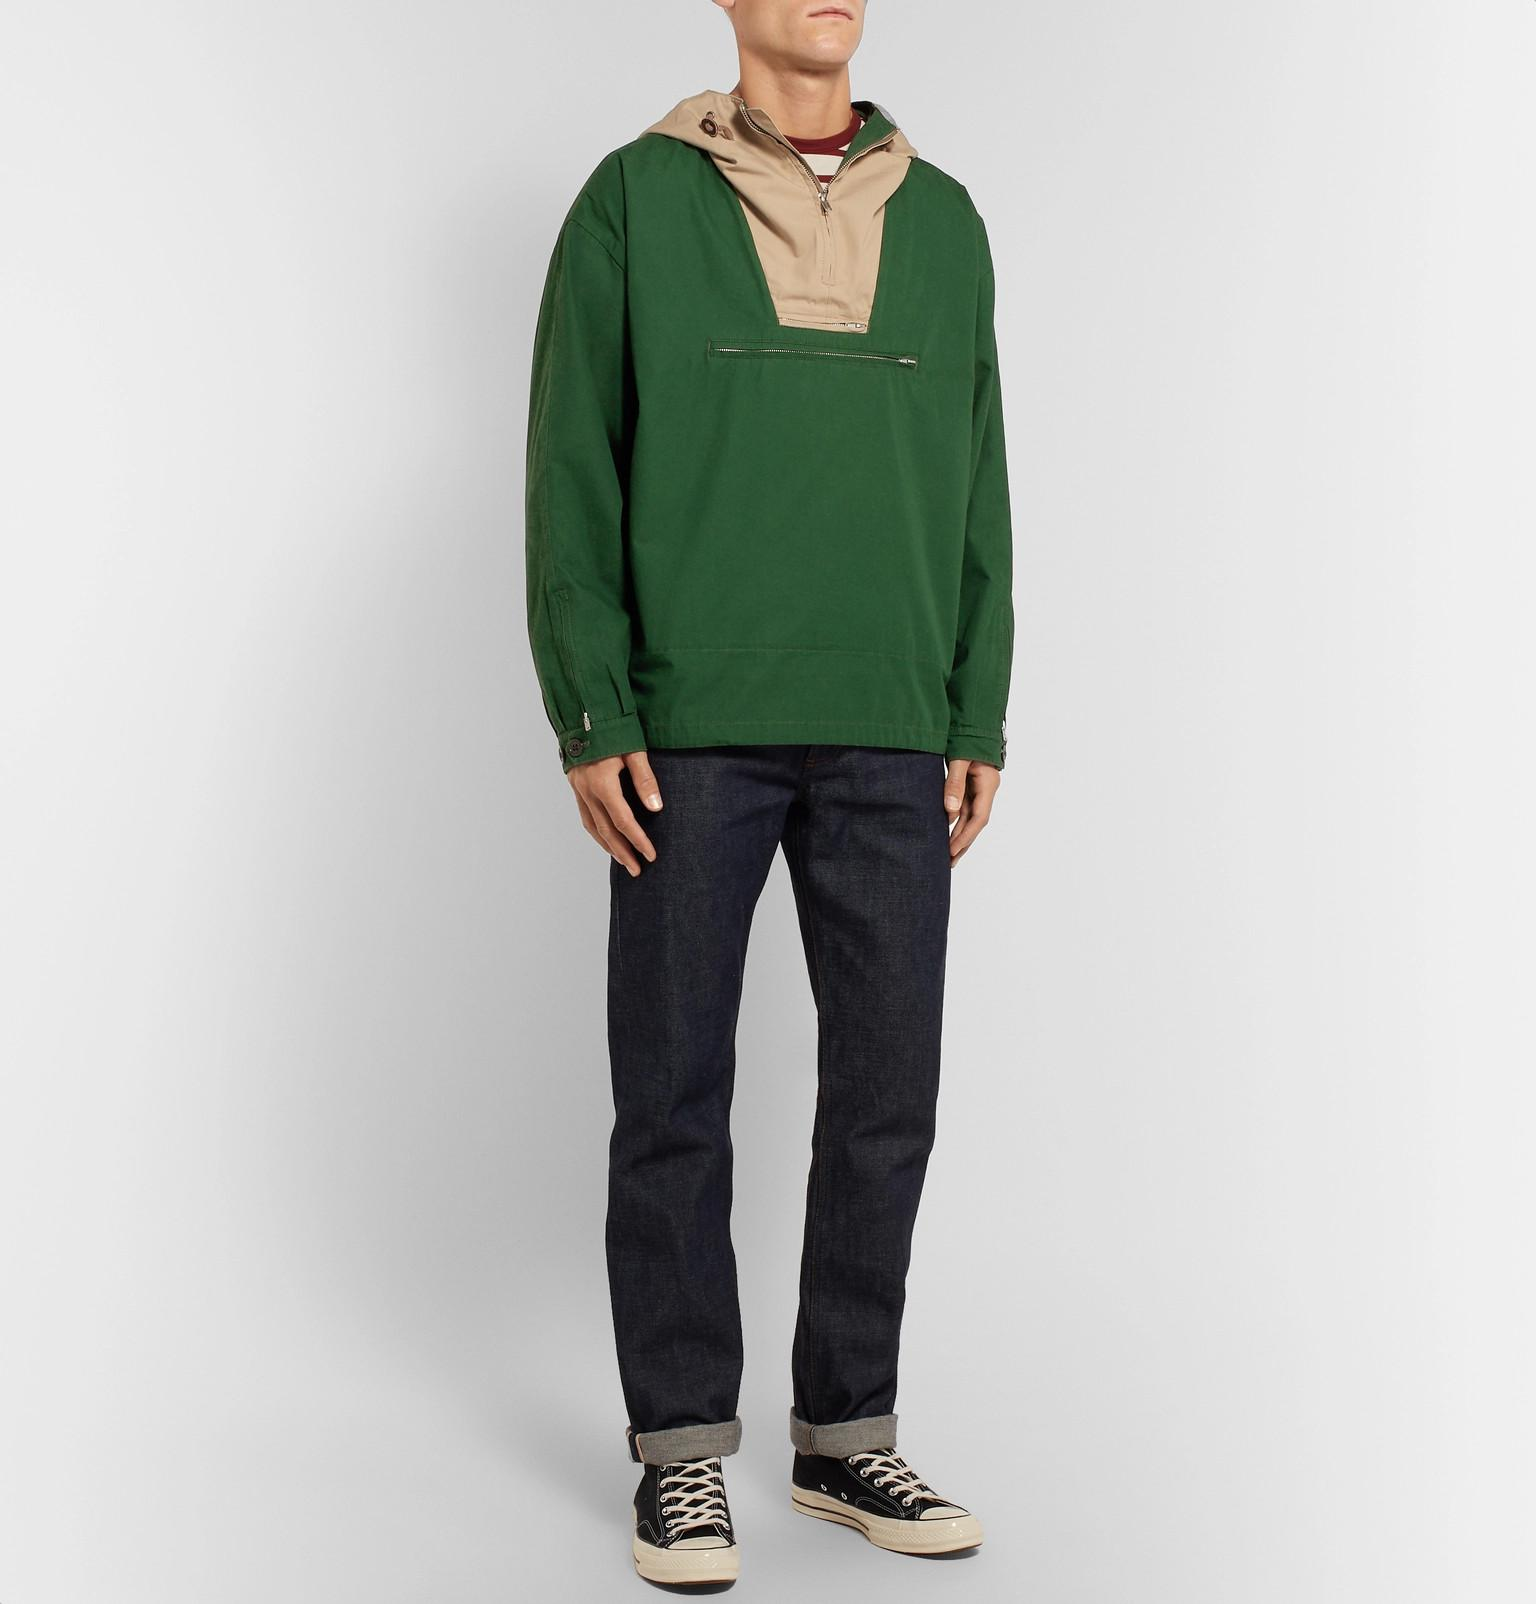 View Lyst J For Anorak crew Fullscreen Colour Green Block Cotton 1989 Men wfvxqRzSwW